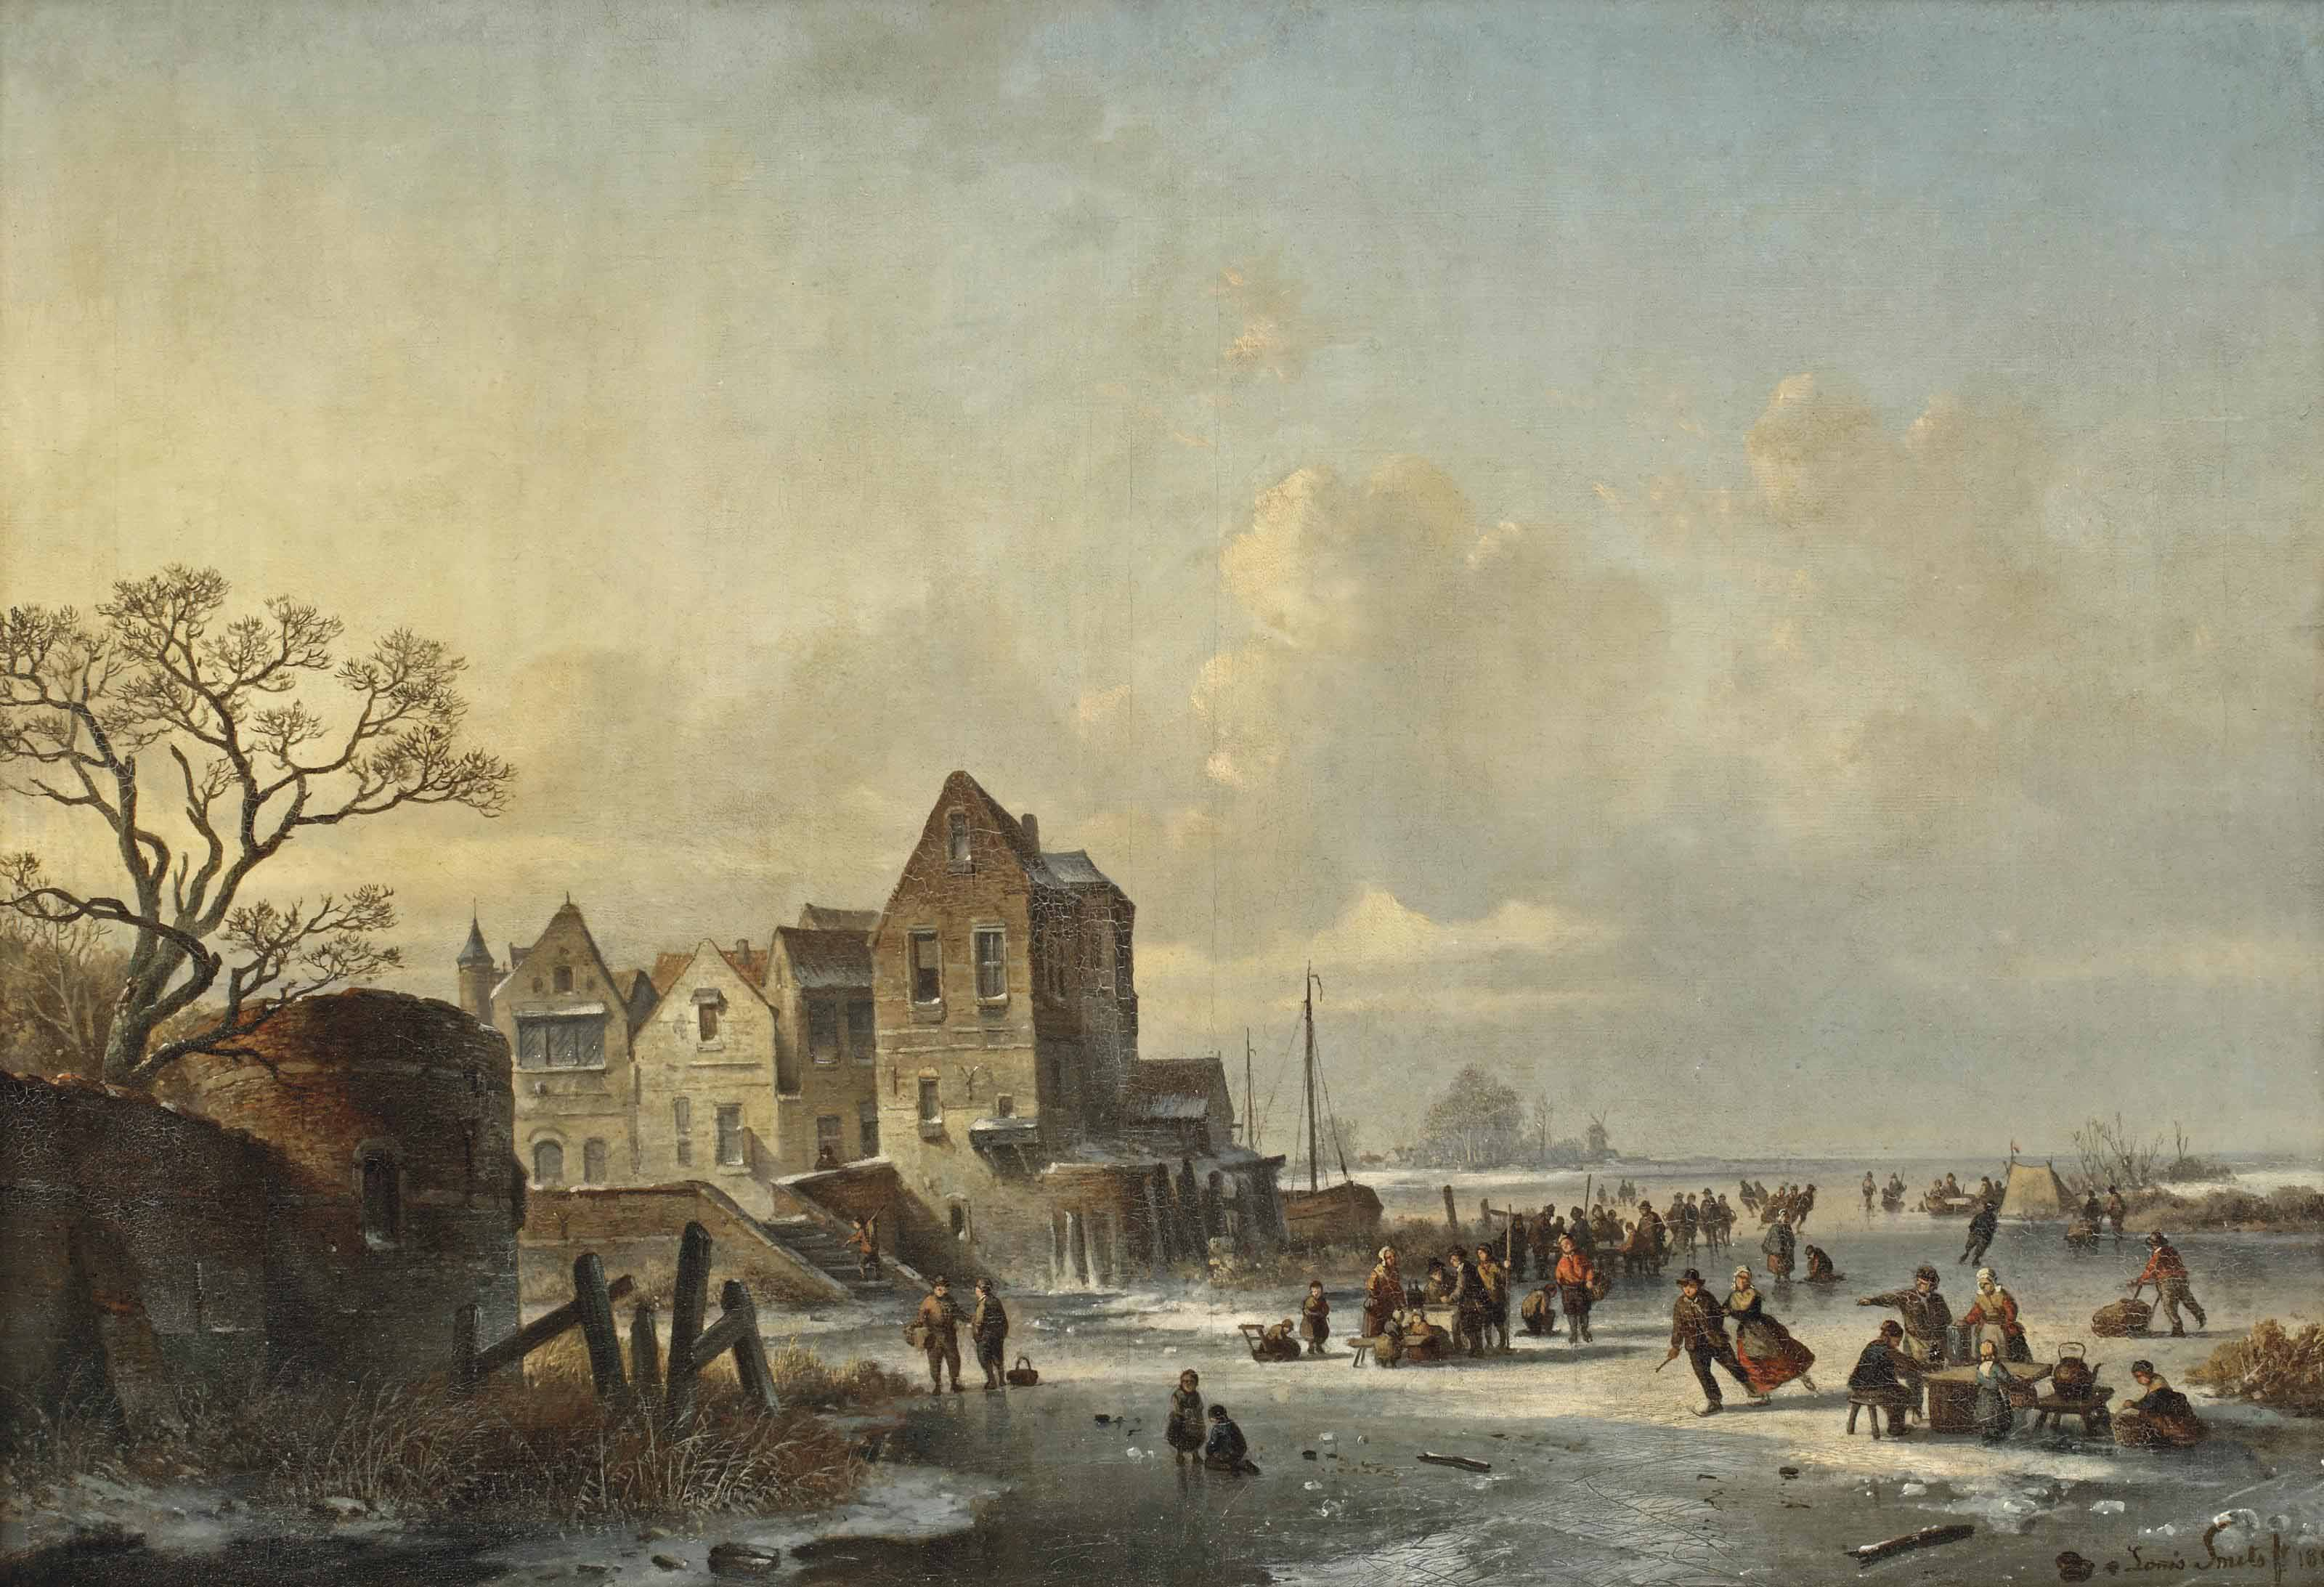 Ice skaters near a Dutch lakeside village